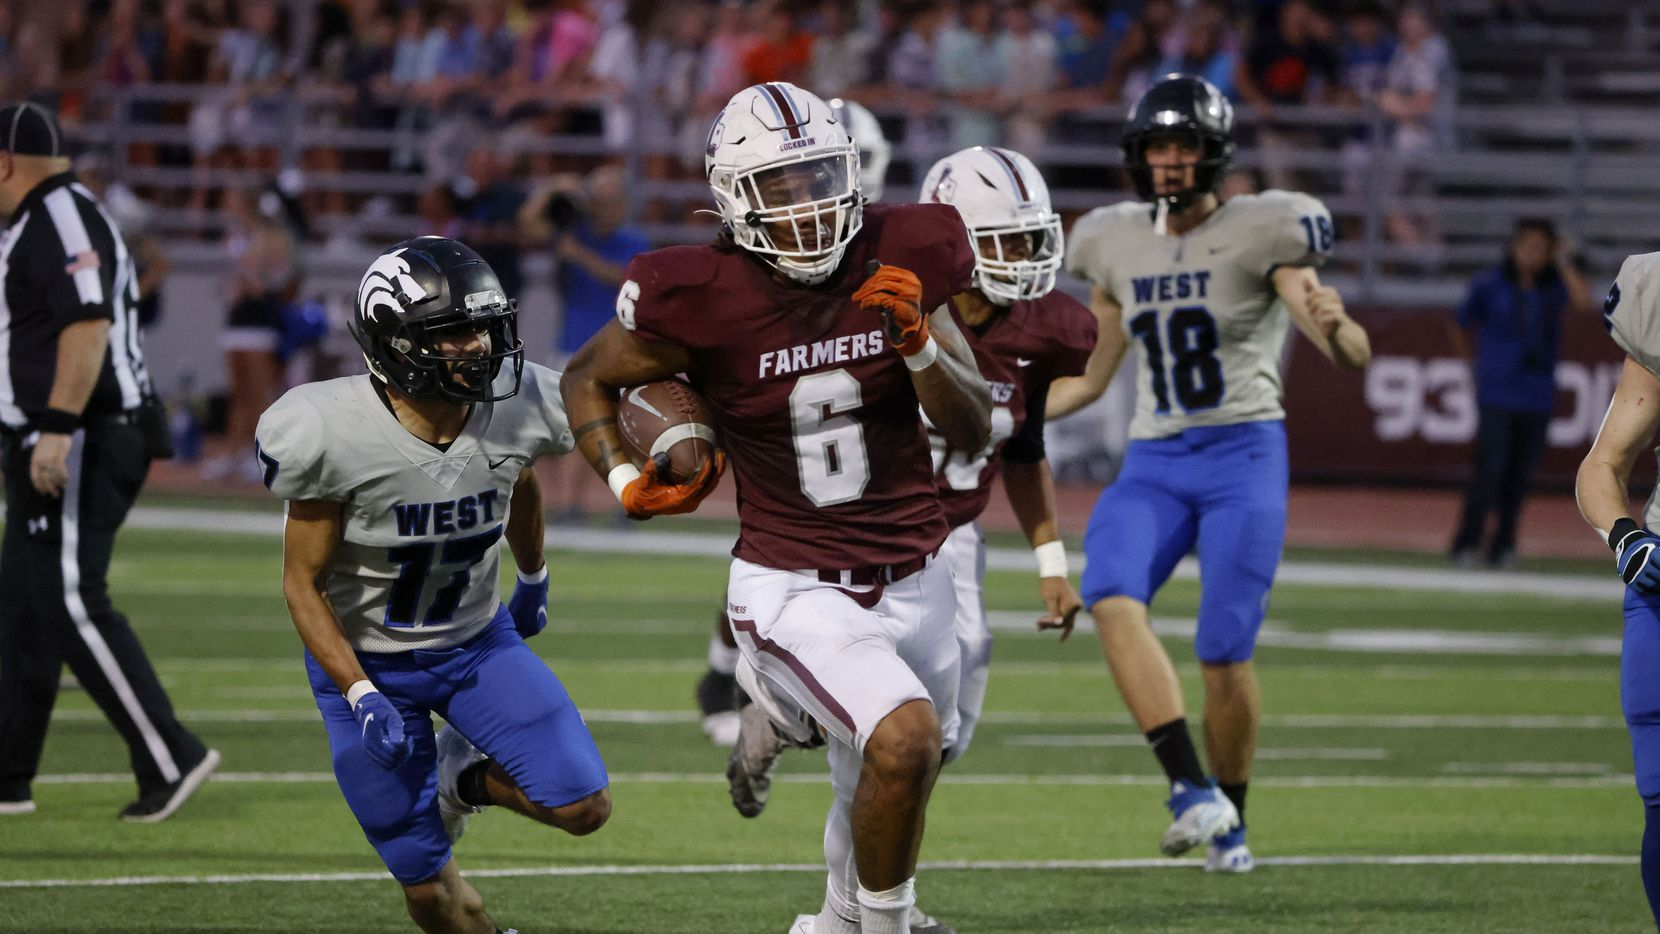 Plano West defender Gael Aguirre (17) chases as Lewisville running back Damien Martinez (6) runs for a toouchdown during the first half of a high school football game in Lewisville, Texas on Friday, Sept. 24, 2021.